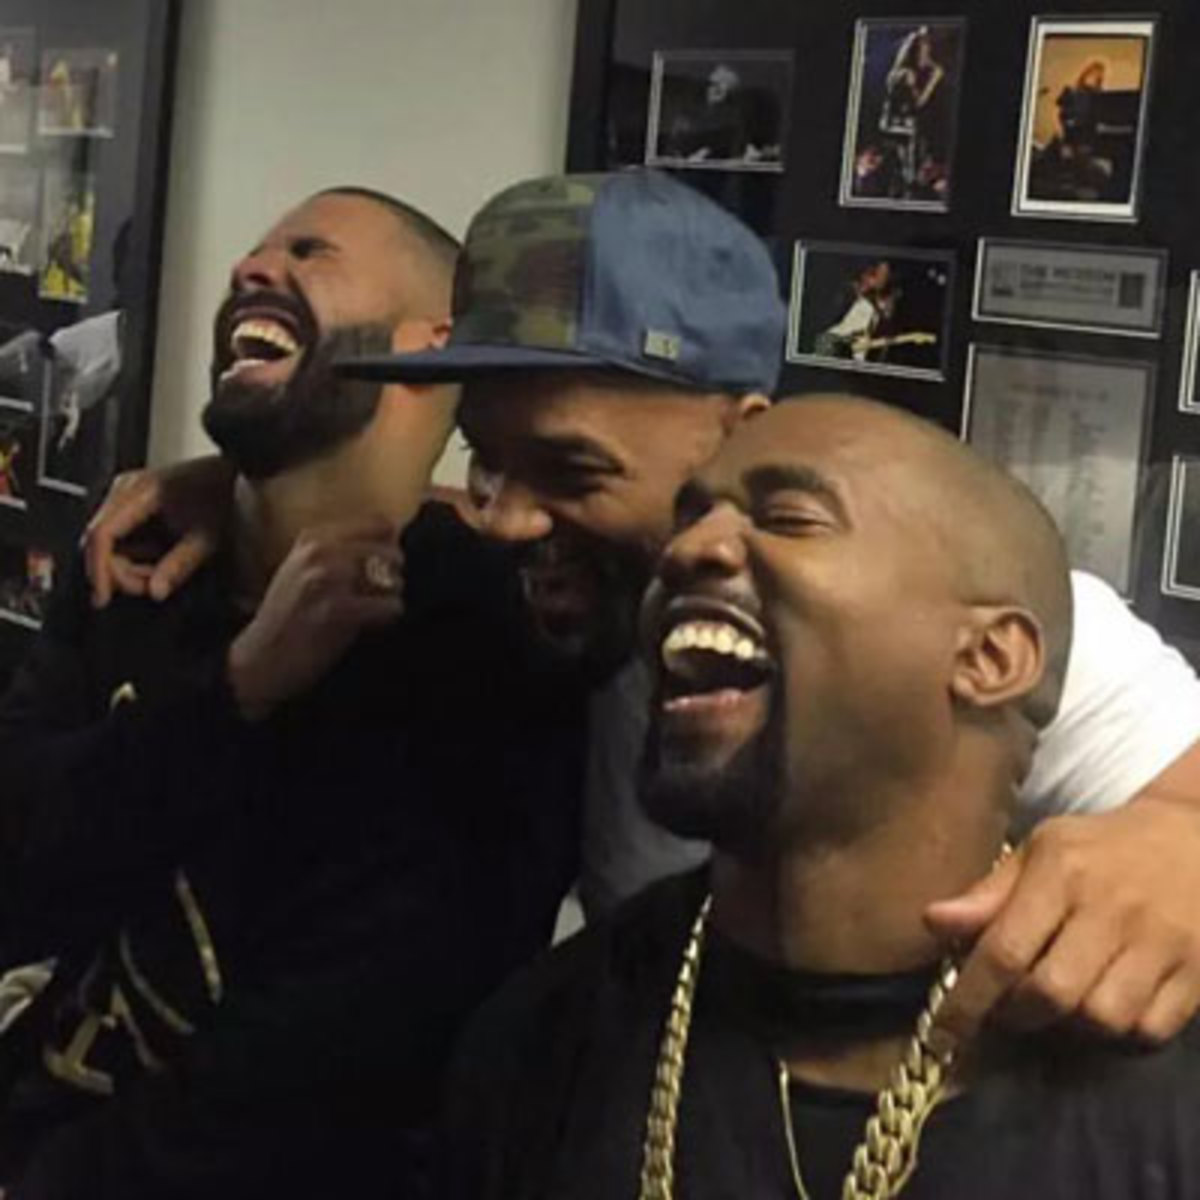 ovo-fest-laughing.jpg